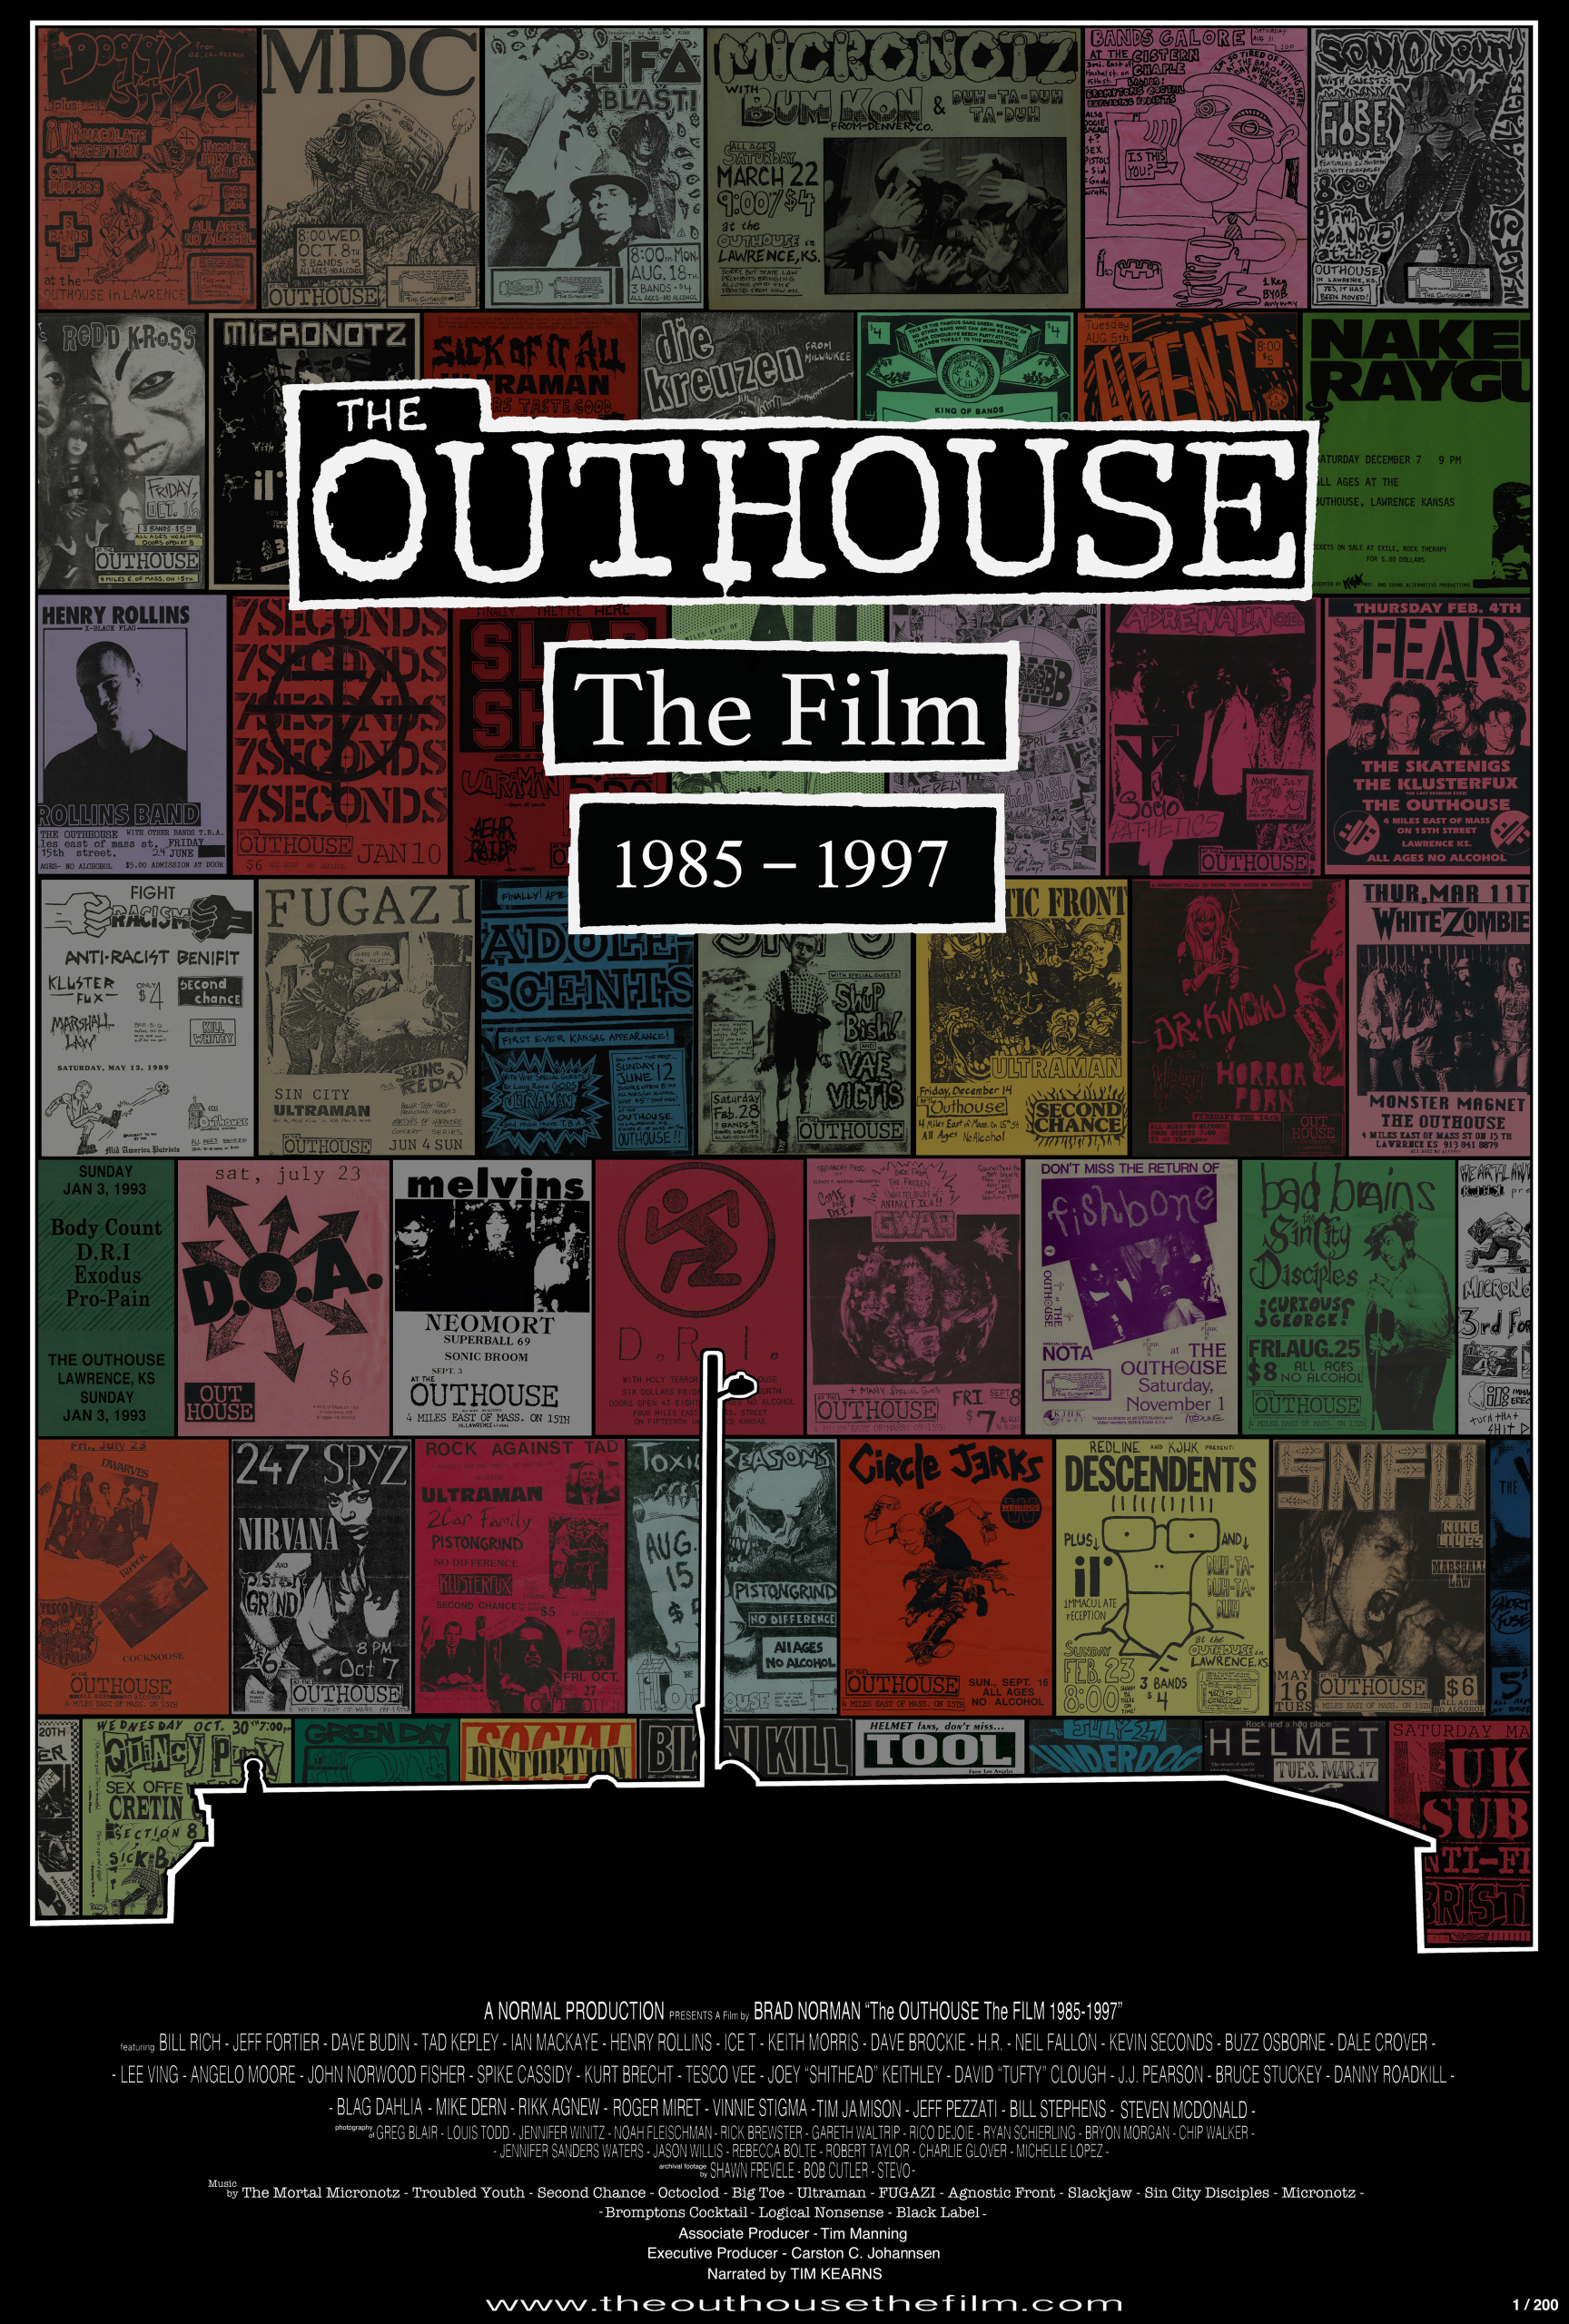 Limited Edition Of 200 The Outhouse The Film 1985 1997 Film Poster